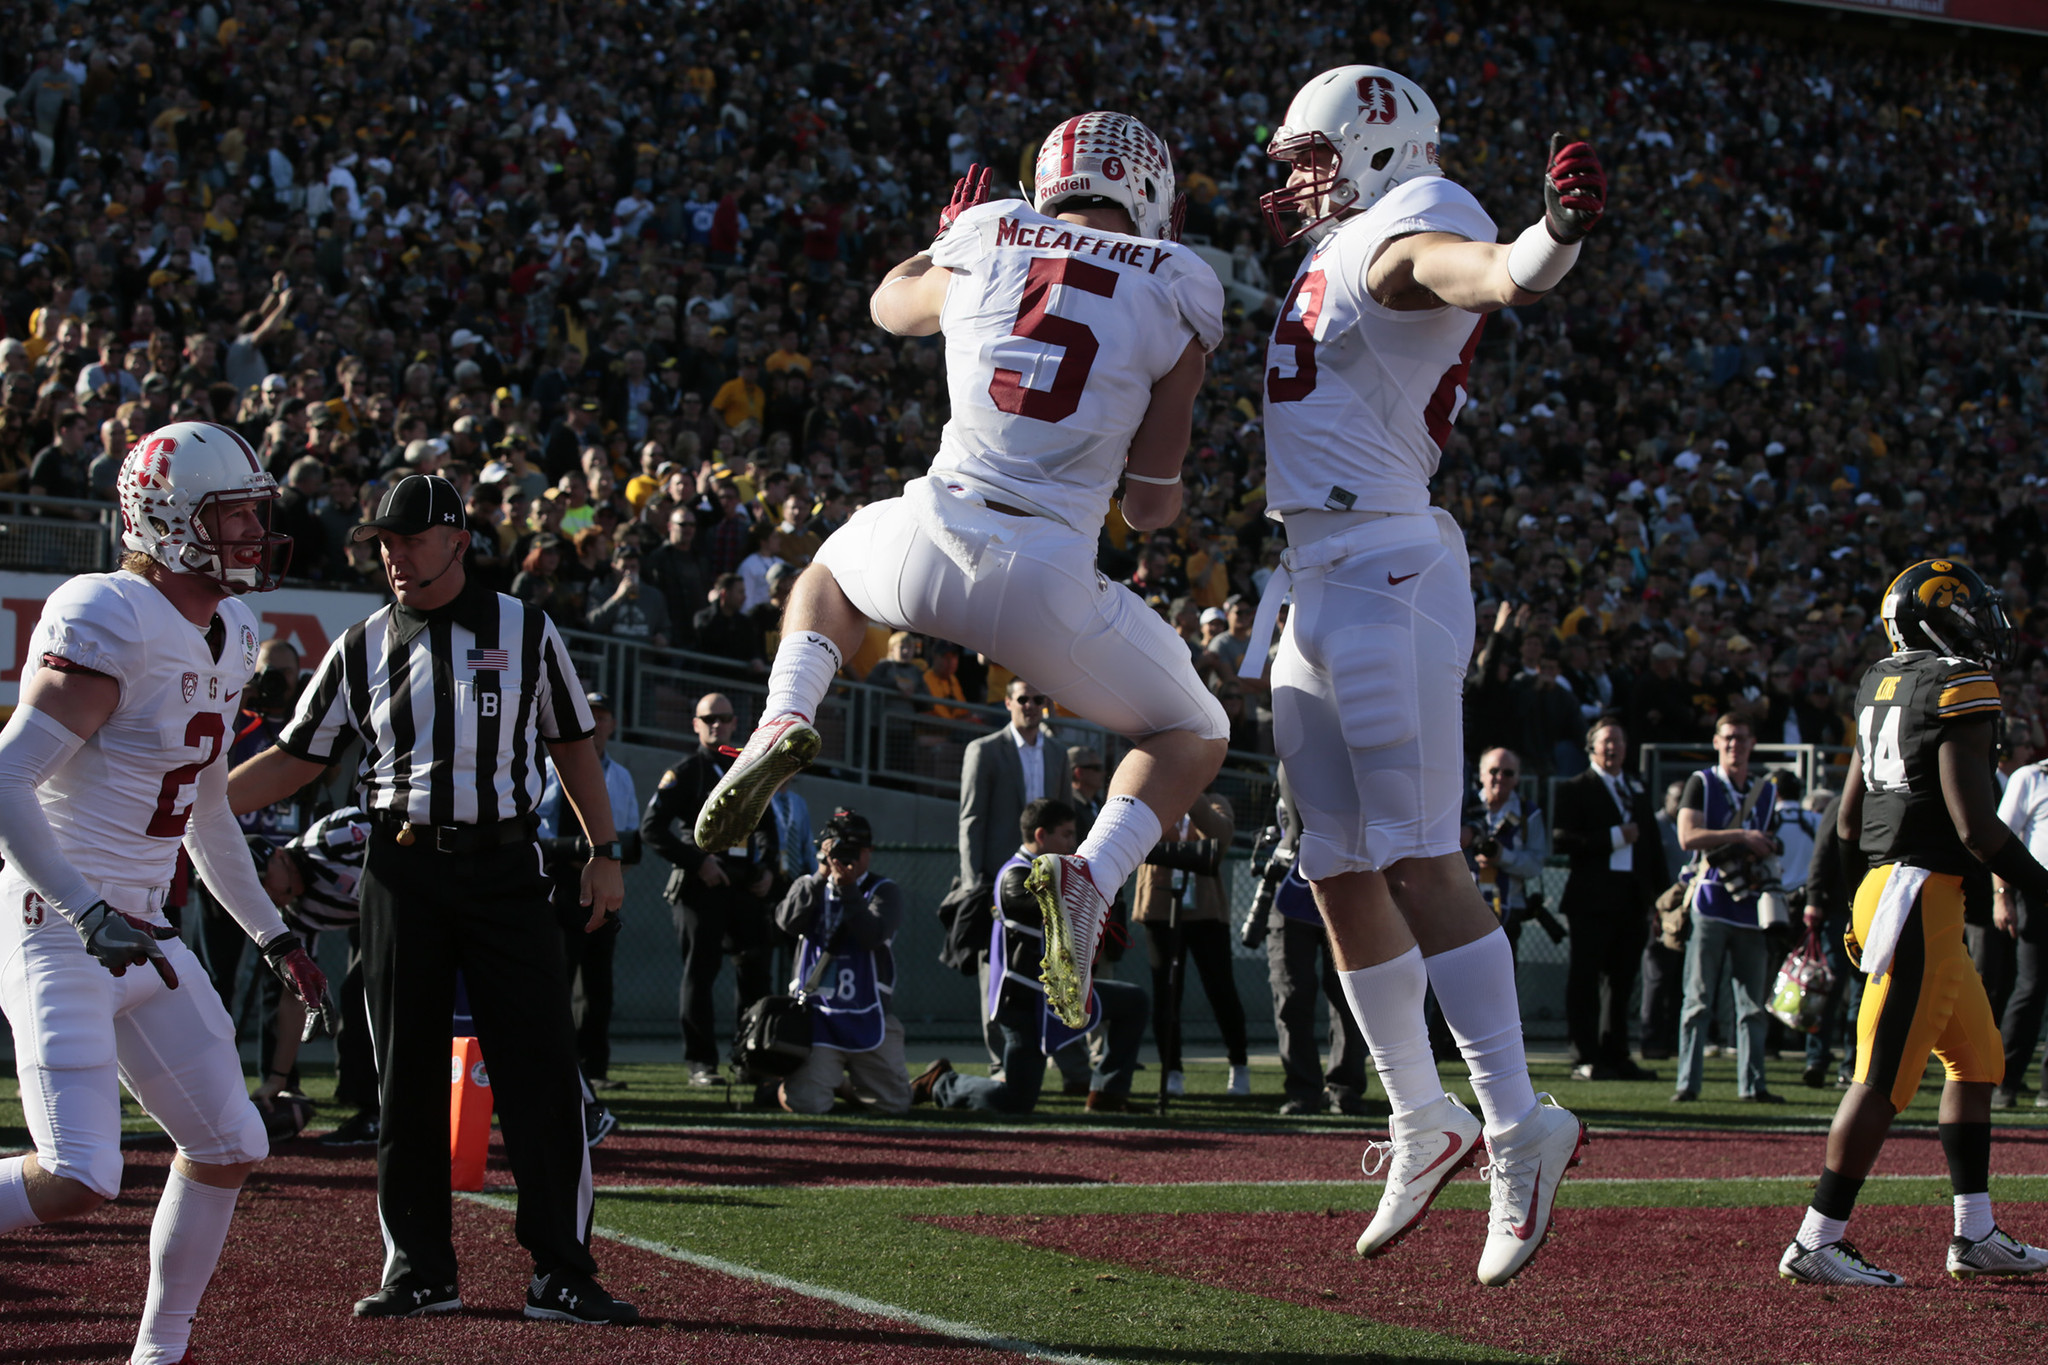 Christian McCaffrey celebrates with teammate. (Robert Gauthier / Los Angeles Times)